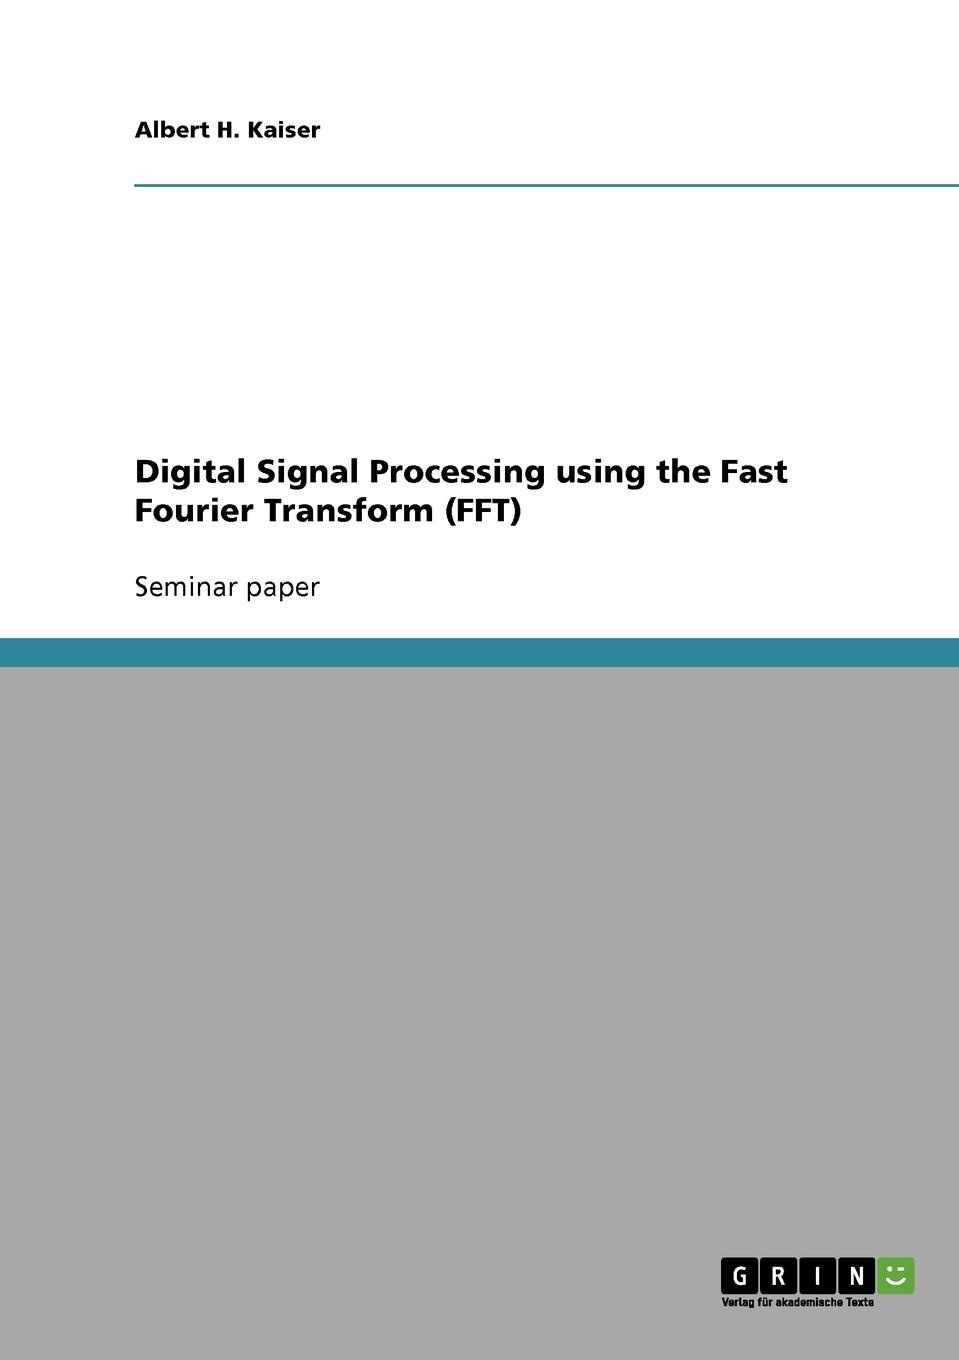 Albert H. Kaiser Digital Signal Processing using the Fast Fourier Transform (FFT) sibandze dan singh pravin singh virath simpson s discrete fourier transform